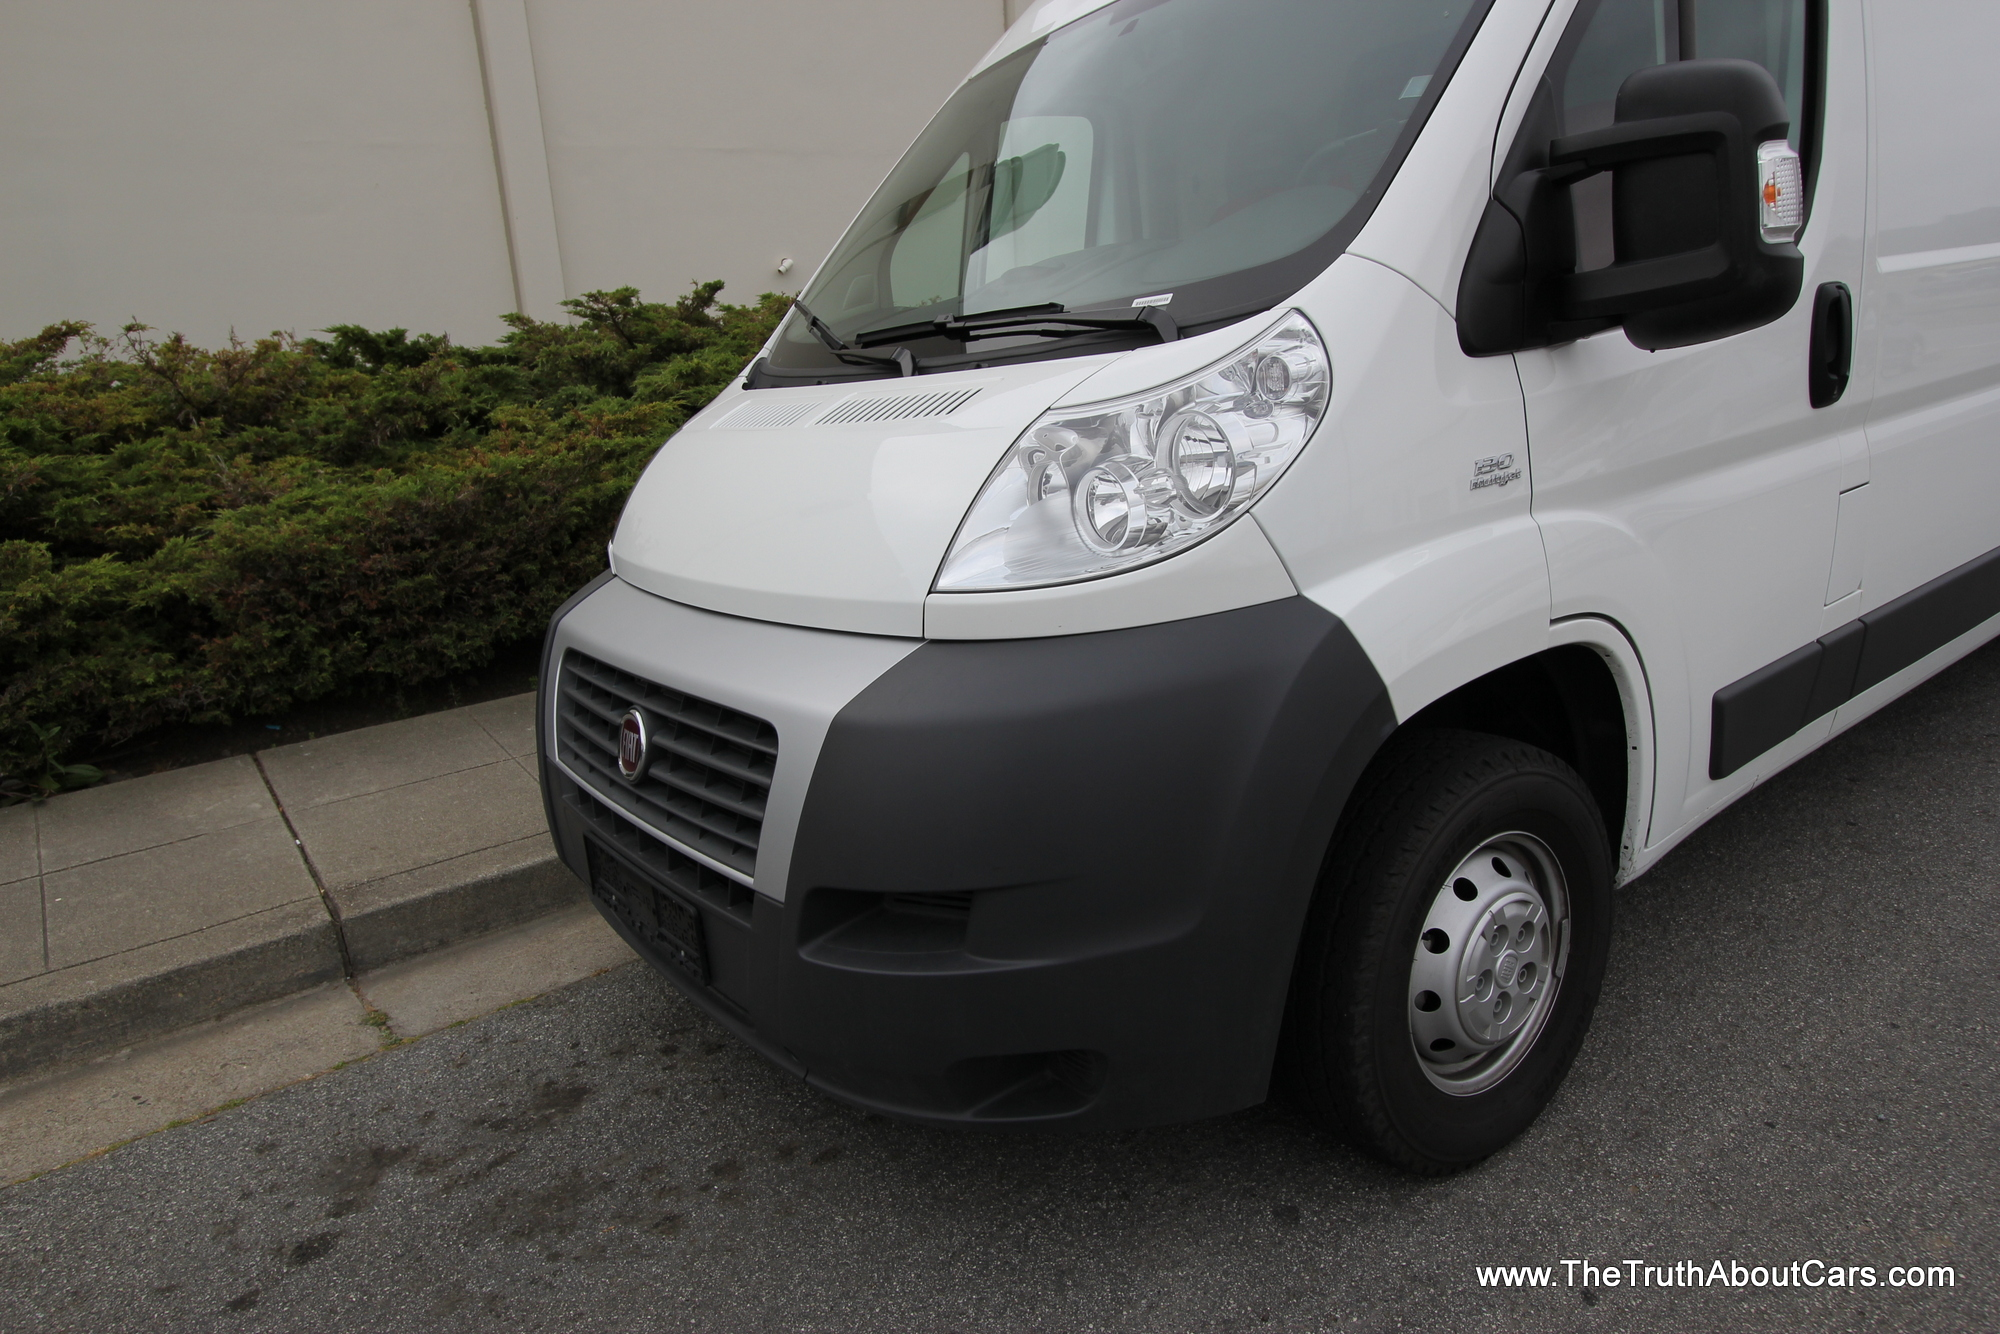 59344a3c2e Review  2013 Fiat Ducato Cargo Van (Video) - The Truth About Cars